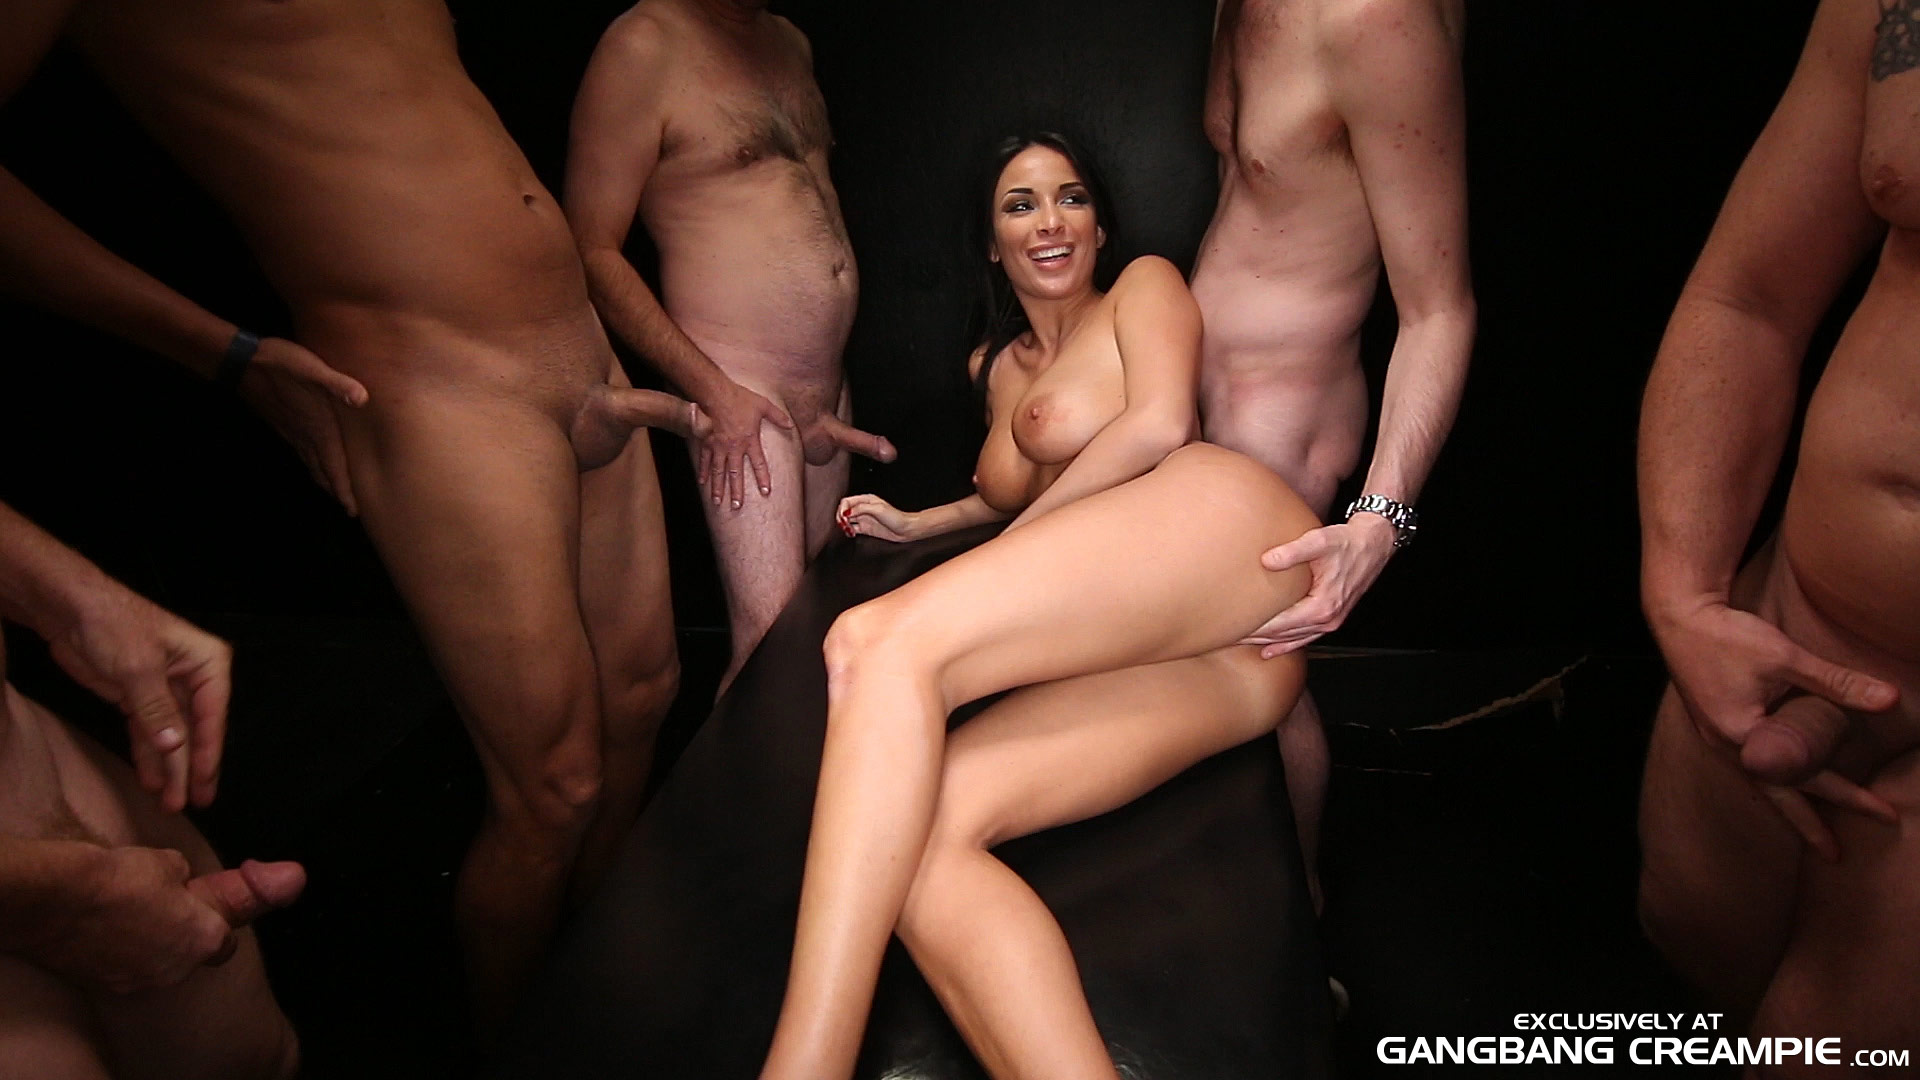 Agree, very Gangbang galleries and free excited